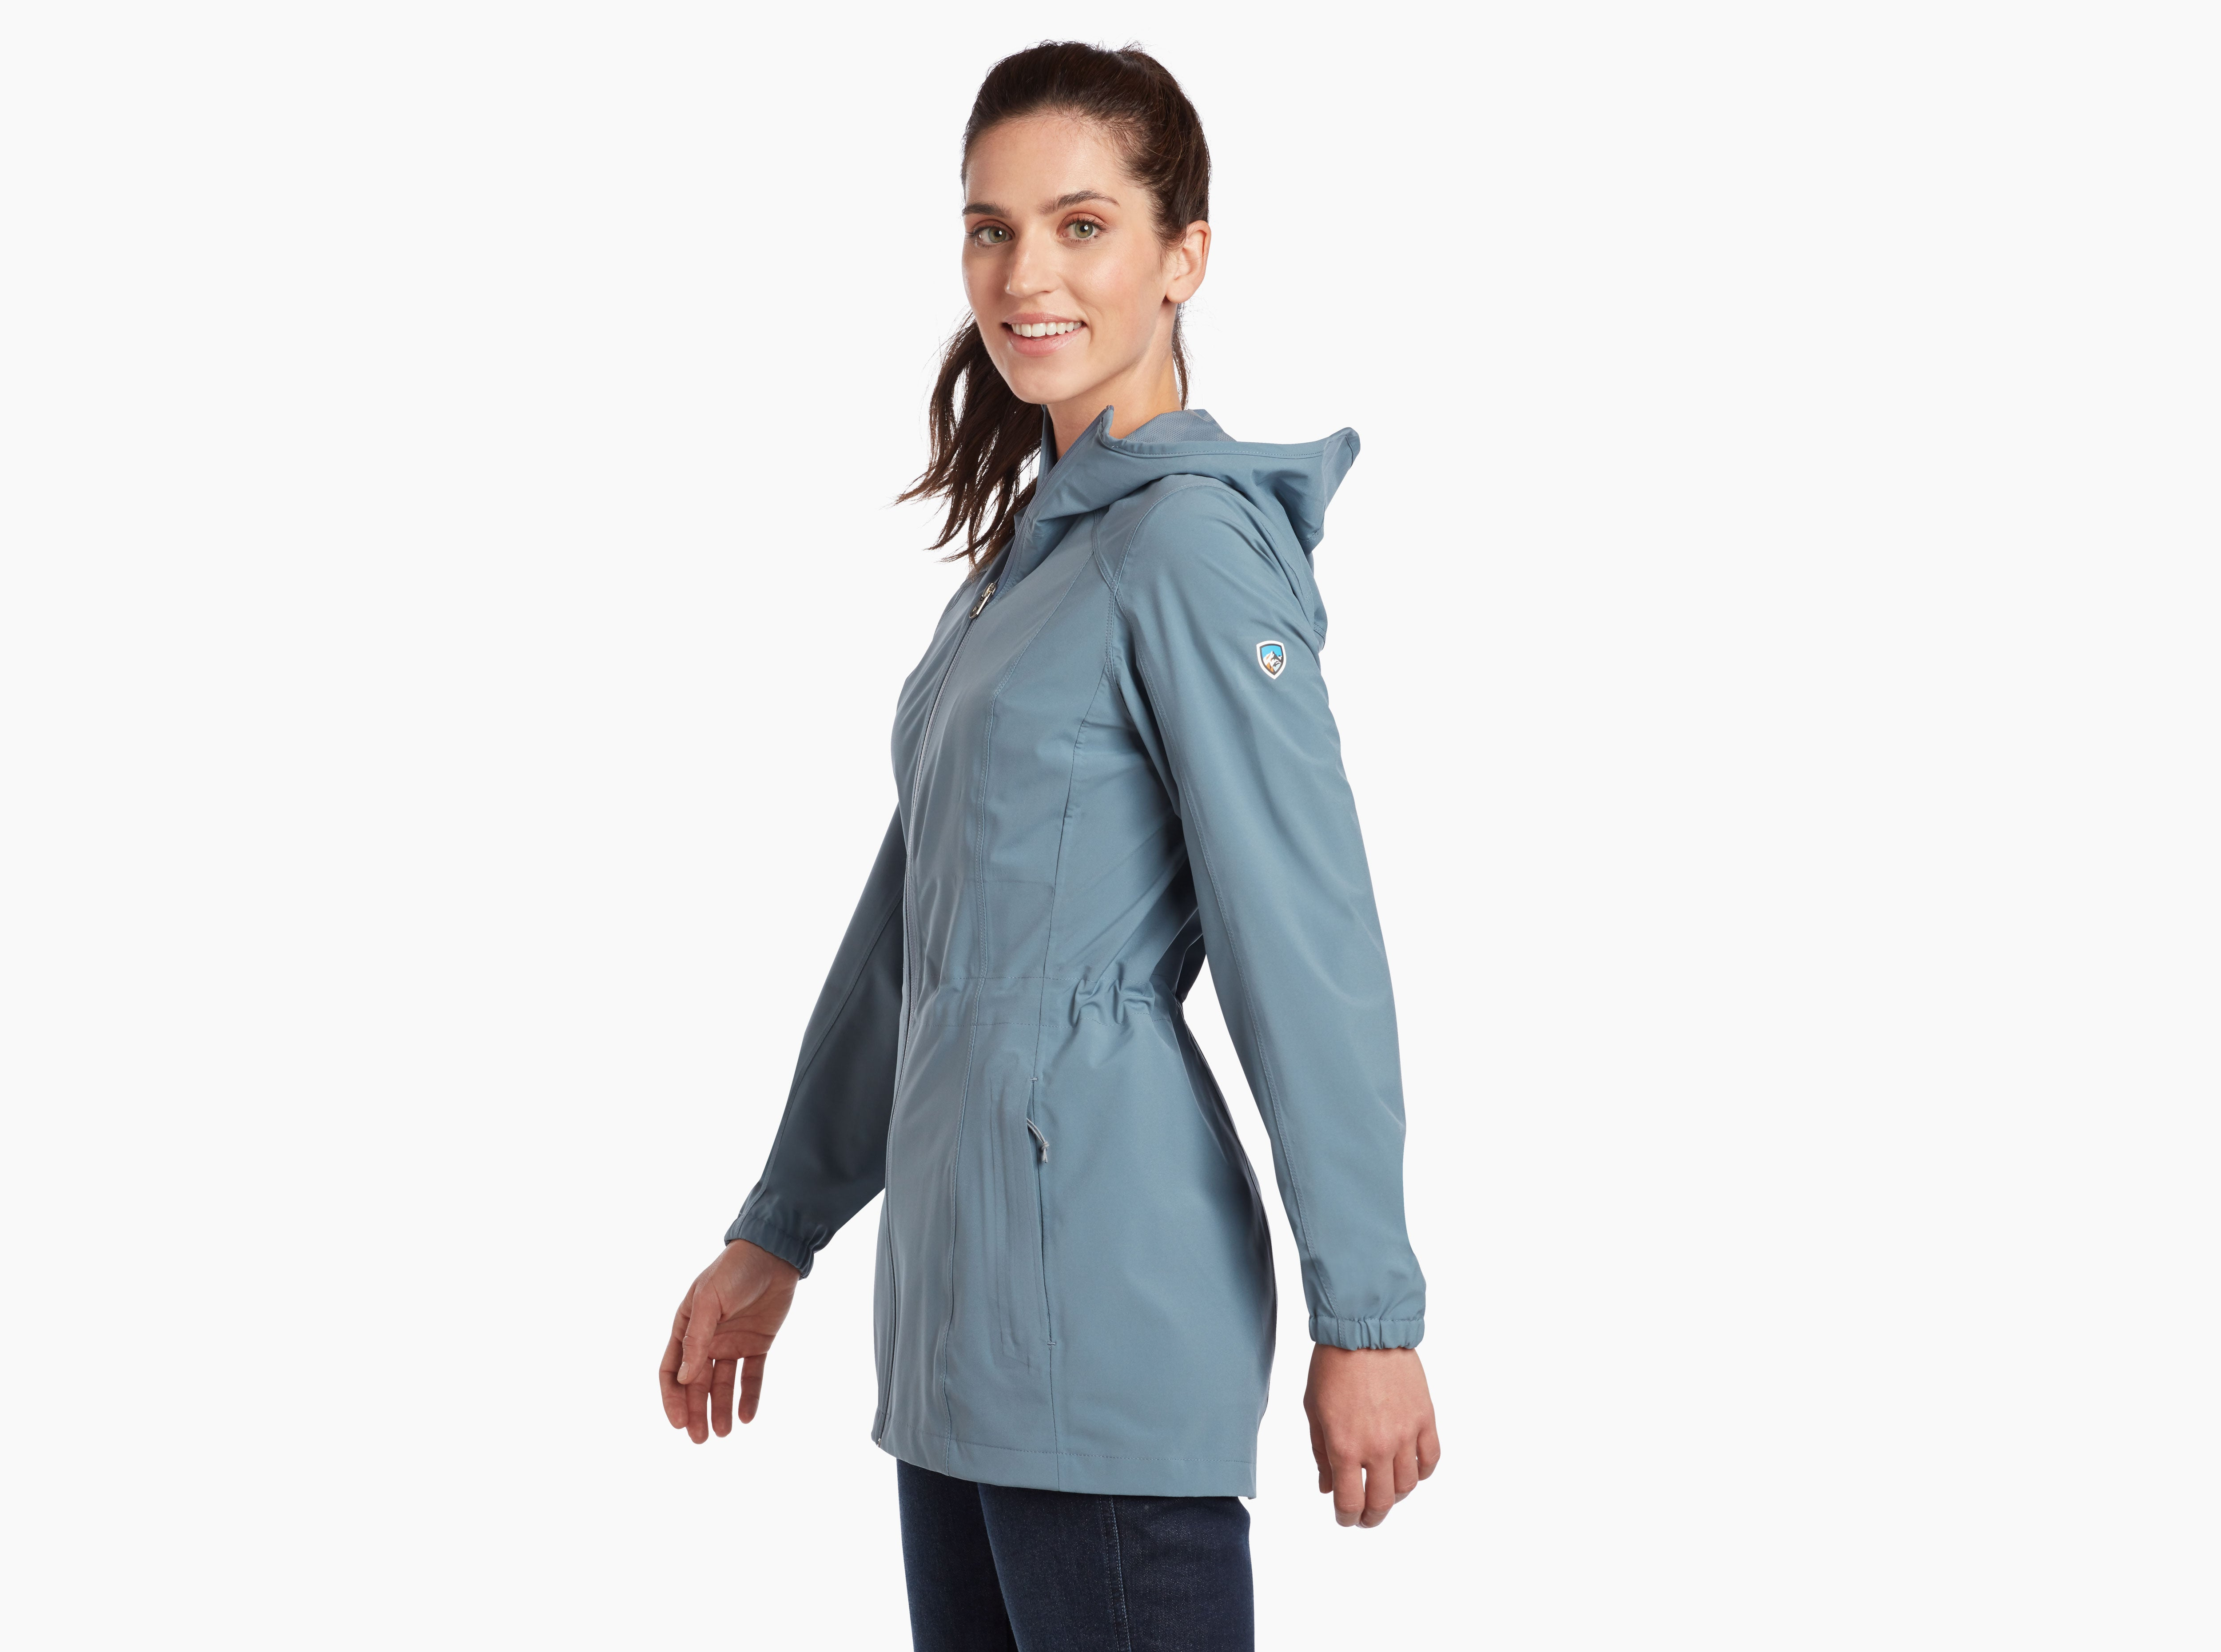 Kuhl Stretch Voyagr Jacket for Ladies in Cornflower Blue